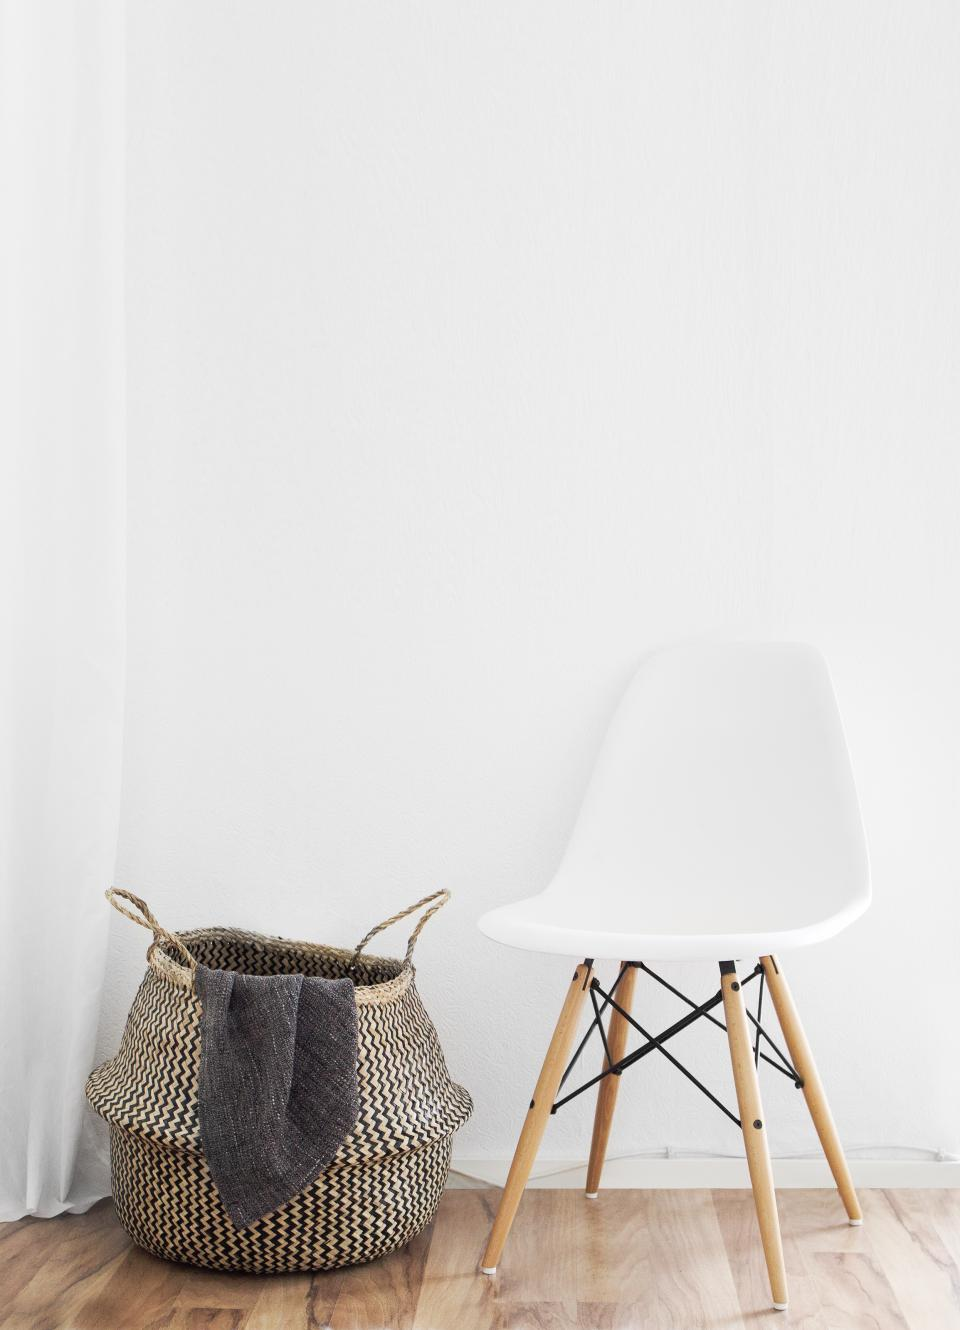 still items things basket chair modern contemporary interior design wood floor white minimalist